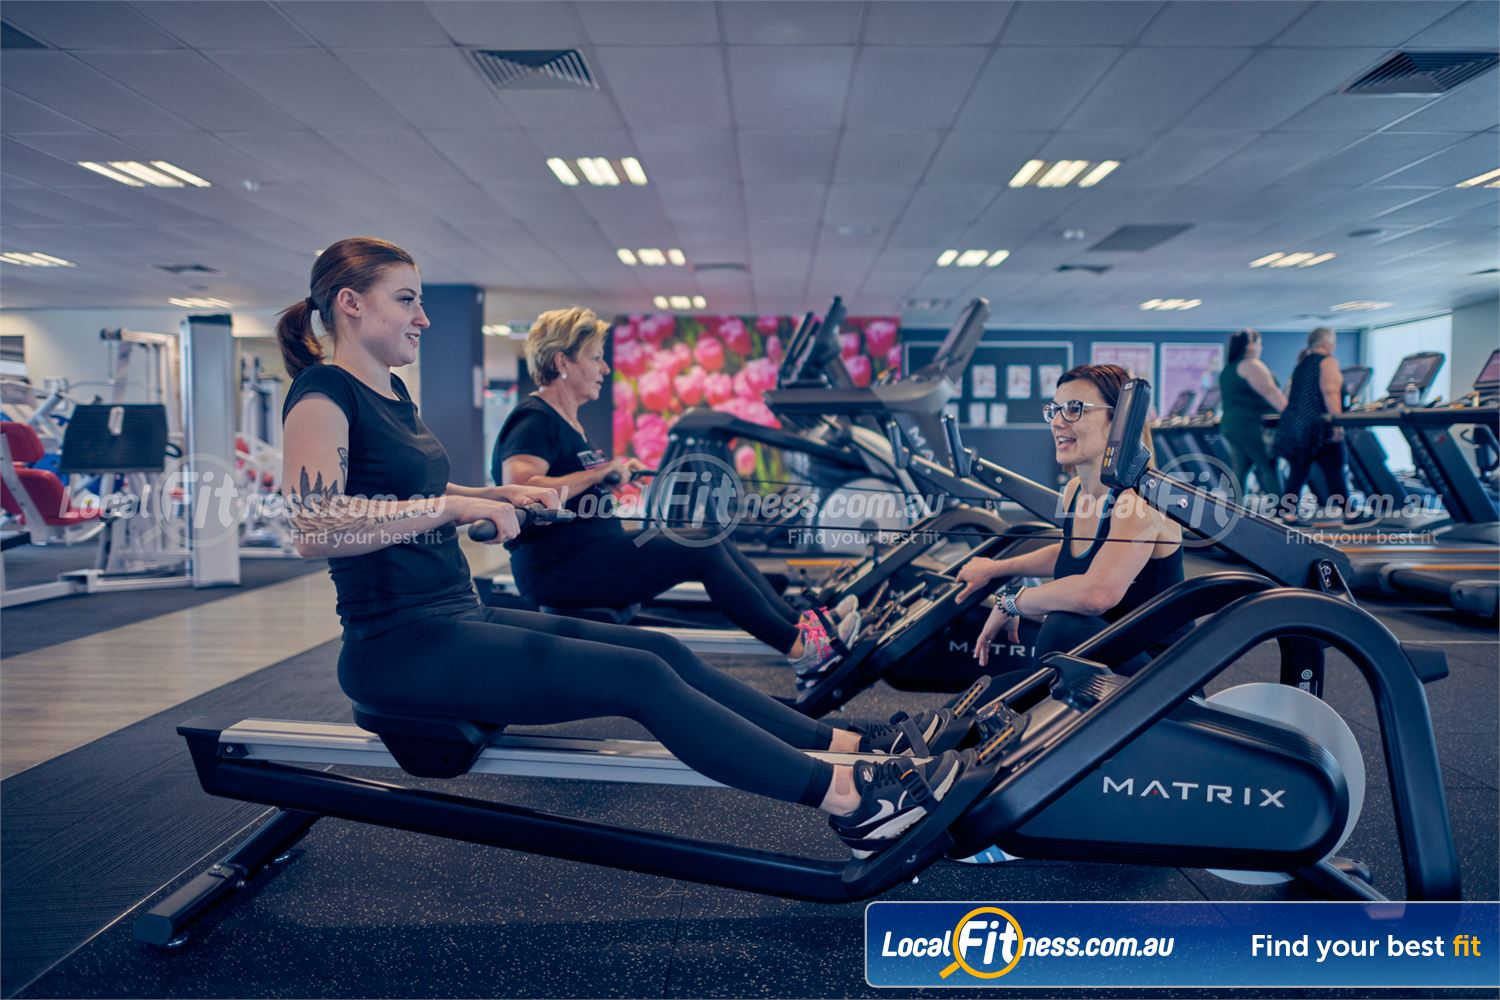 Fernwood Fitness Near Deer Park Our Cairnlea gym team can write a cardio and weight-loss program to suit you.